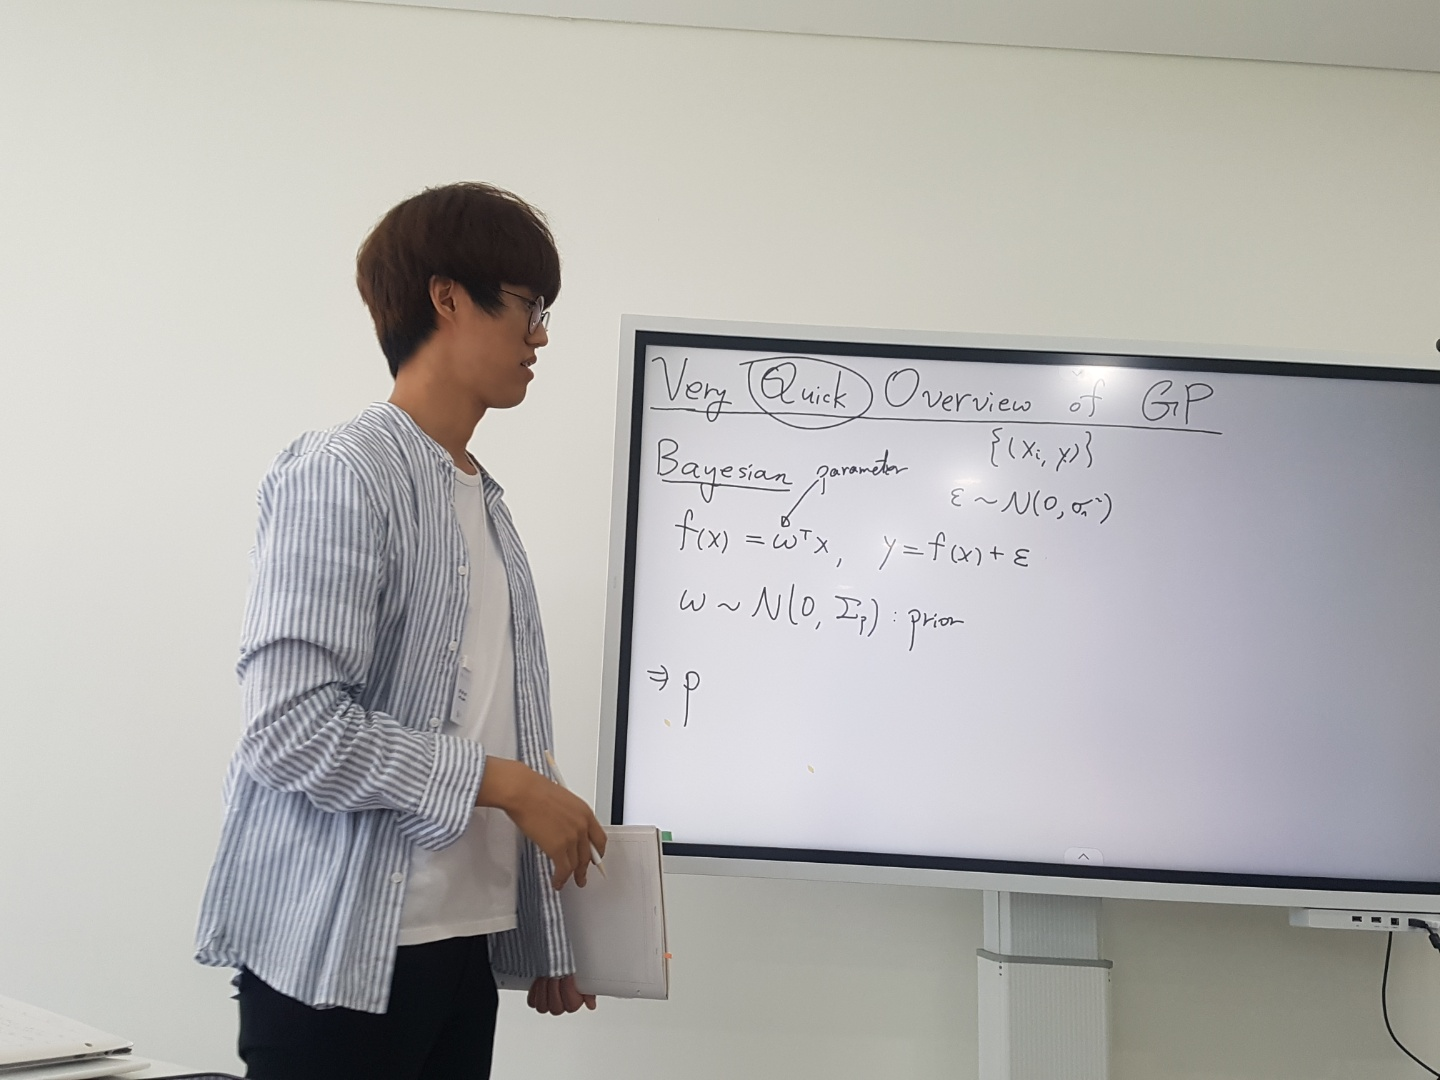 Junghyun Lee gave a talk on Bayesian ML/DL, with application to parameter inference of coupled non-linear ODEs as the Journal Club